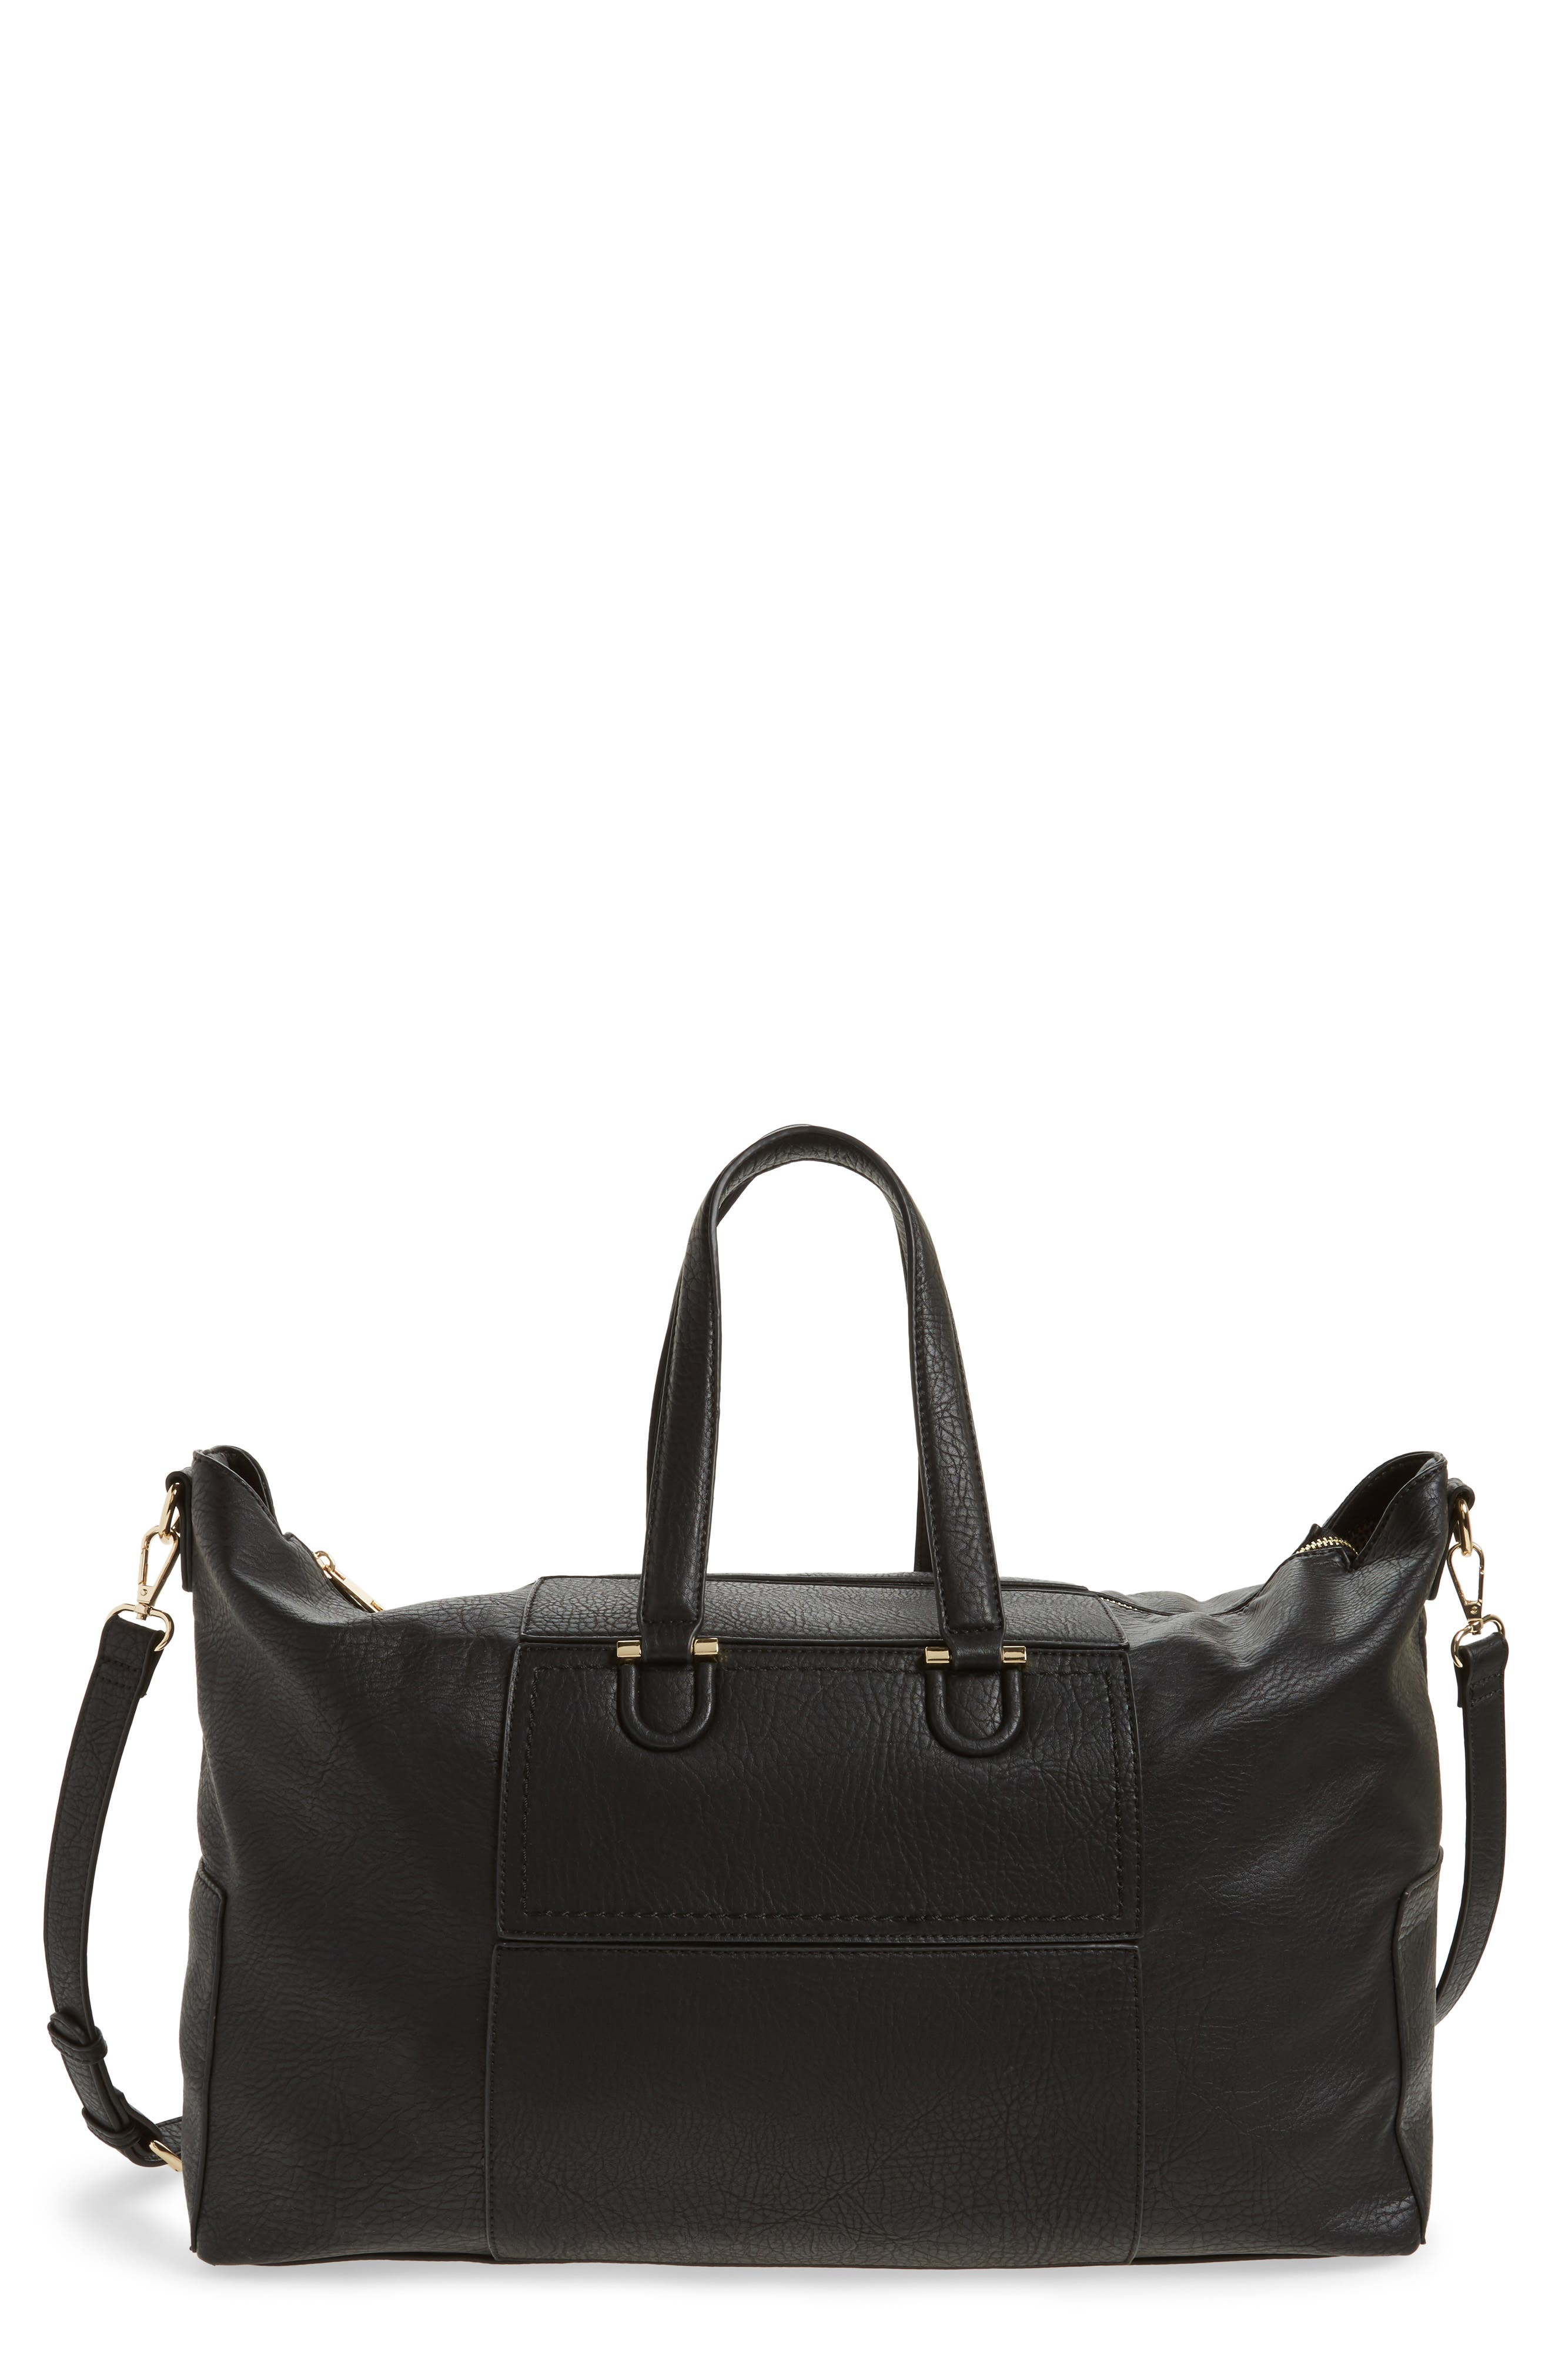 Alternate Image 1 Selected - Sole Society Cory Faux Leather Travel Tote